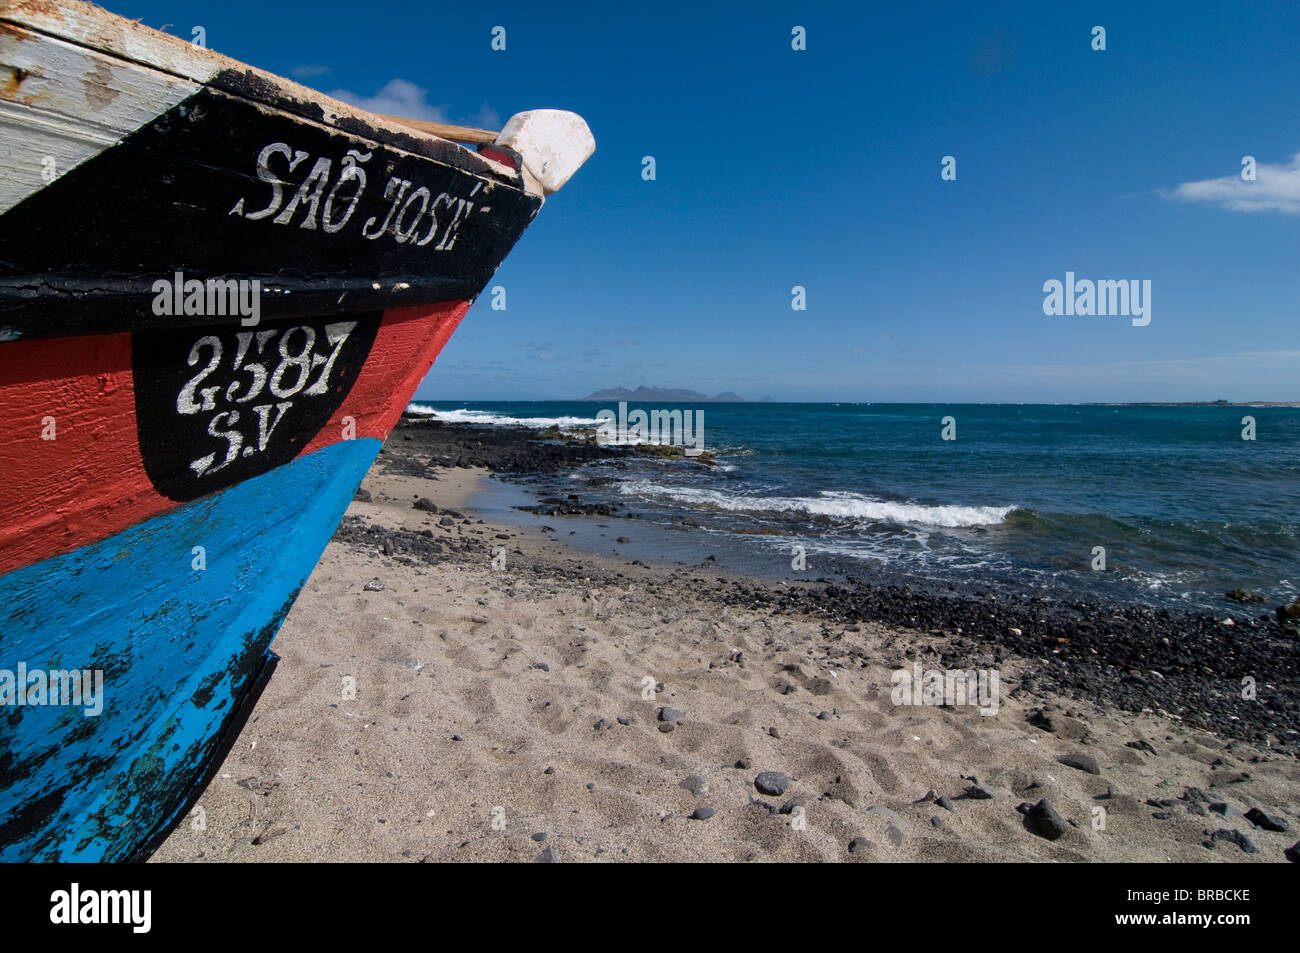 Wooden boat at sandy beach, Sao Vicente, Cape Verde, Atlantic Stock Photo